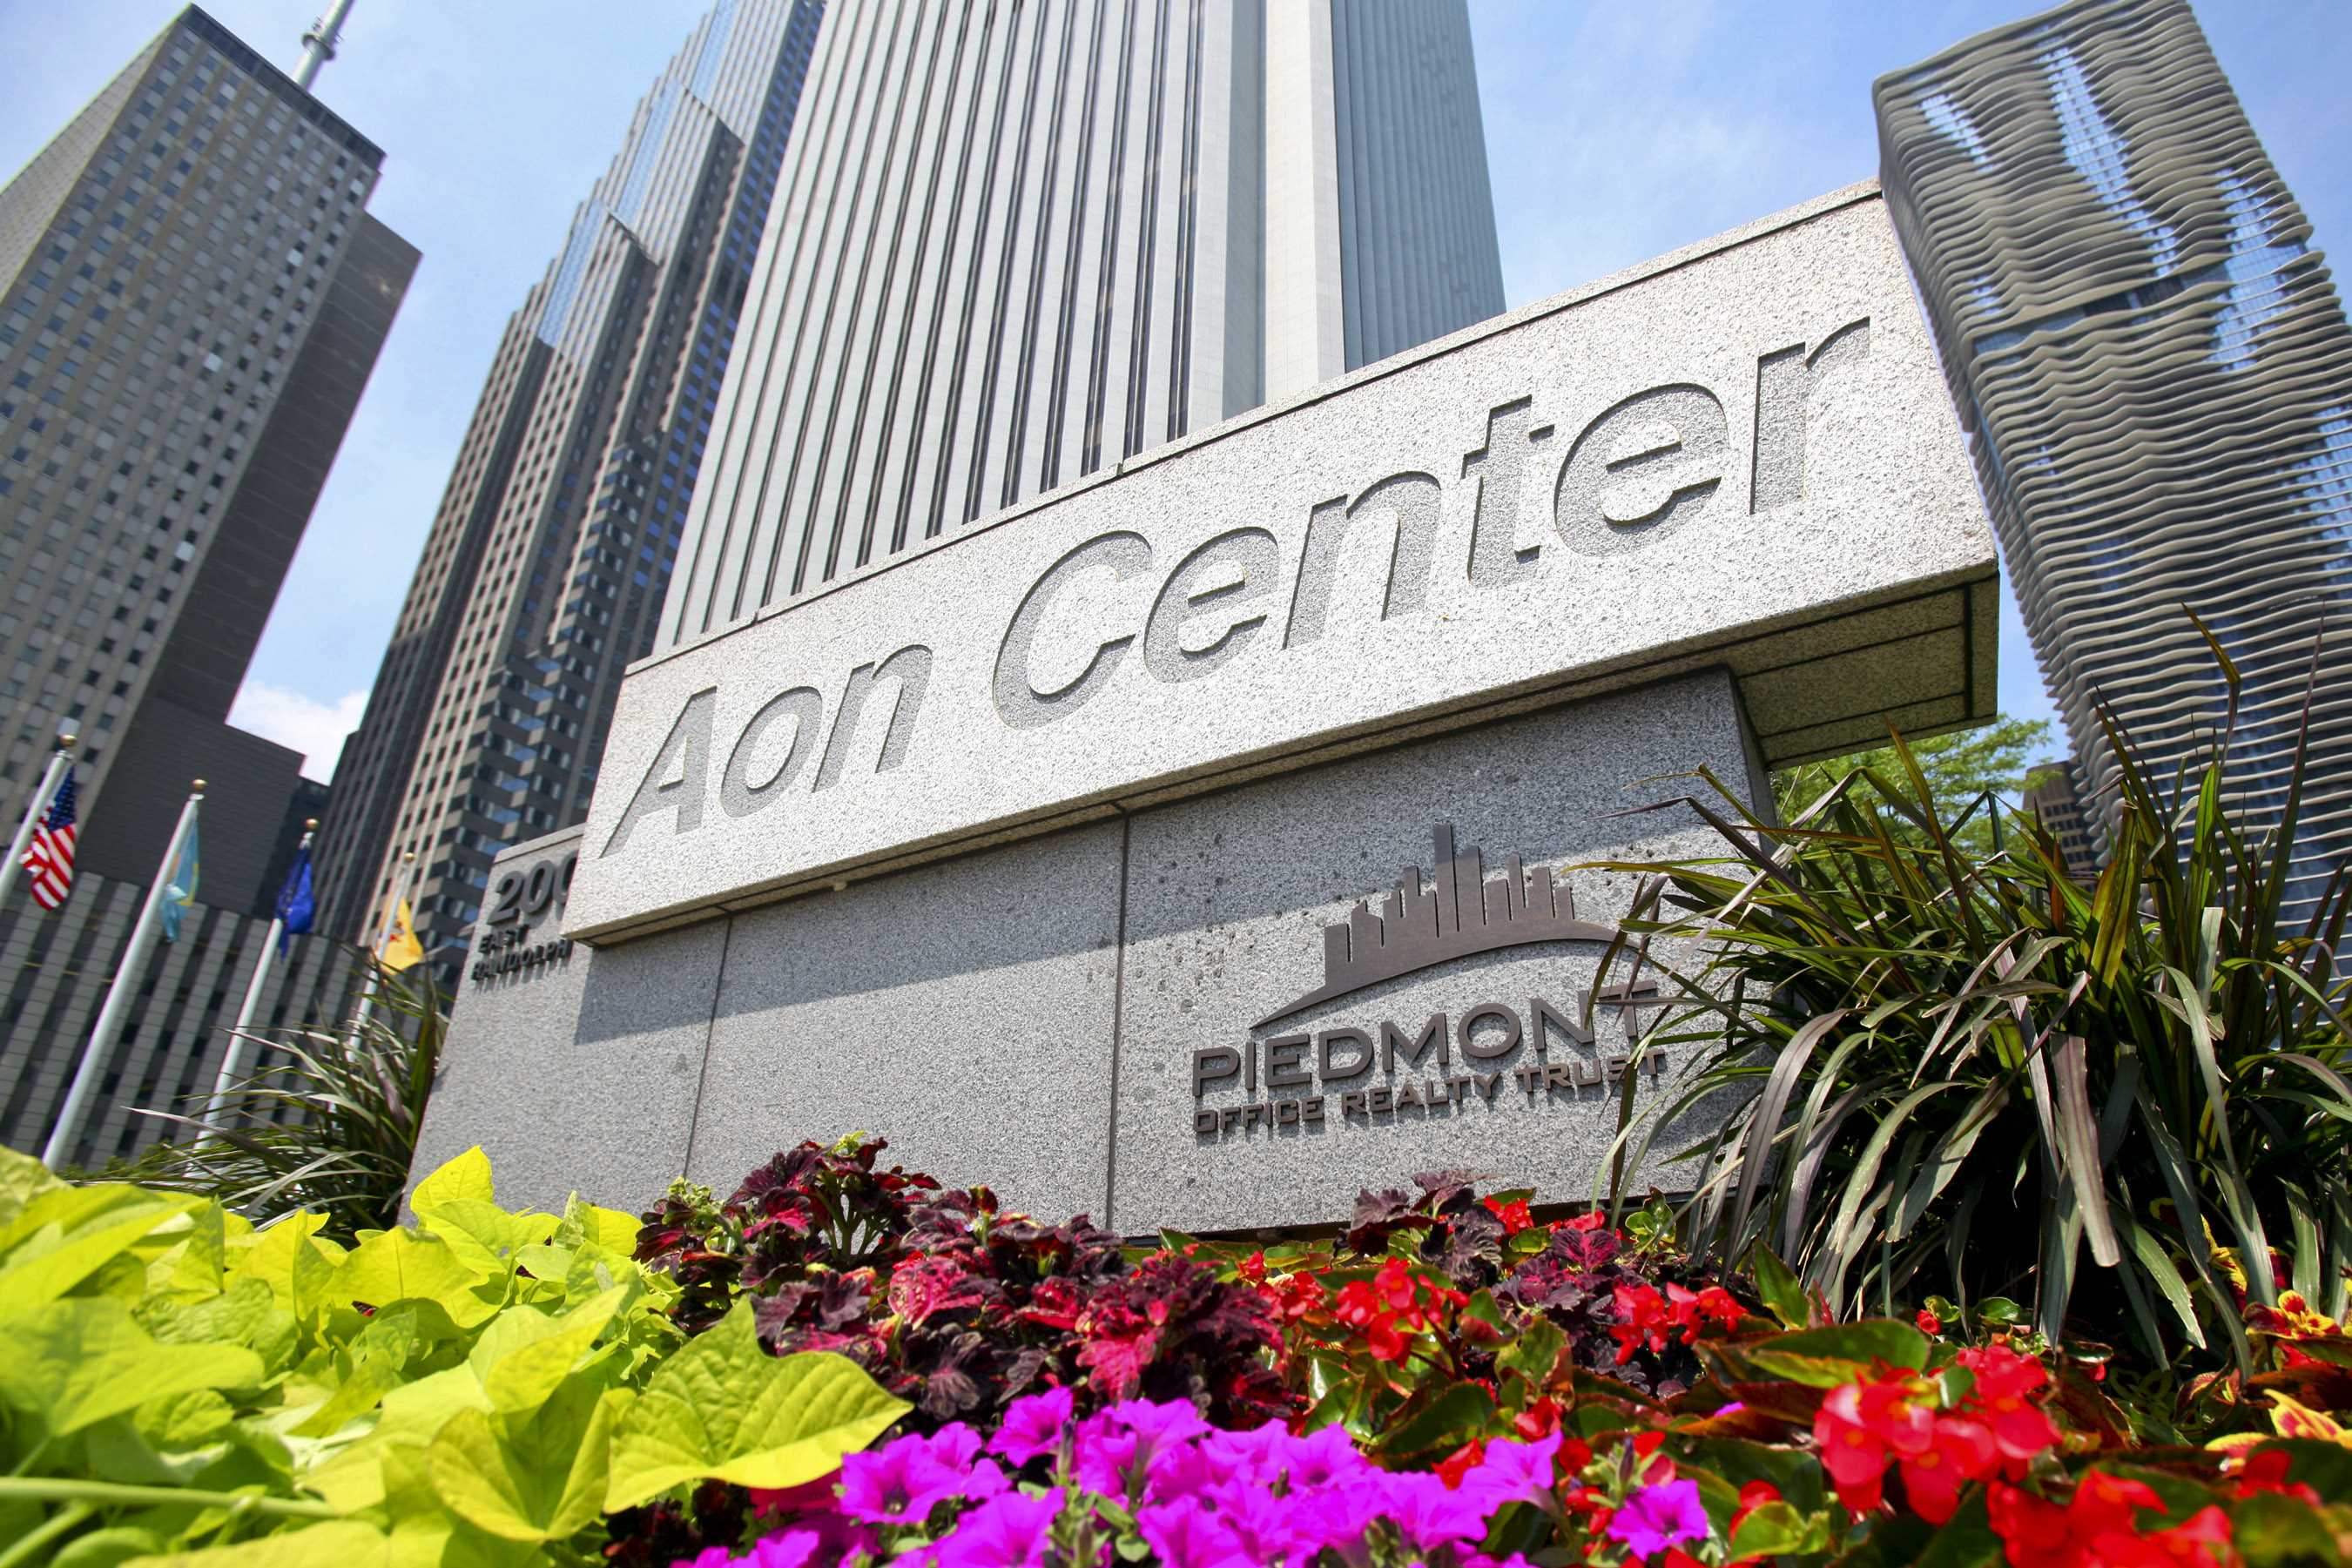 Aon shareholders approve moving headquarters to London